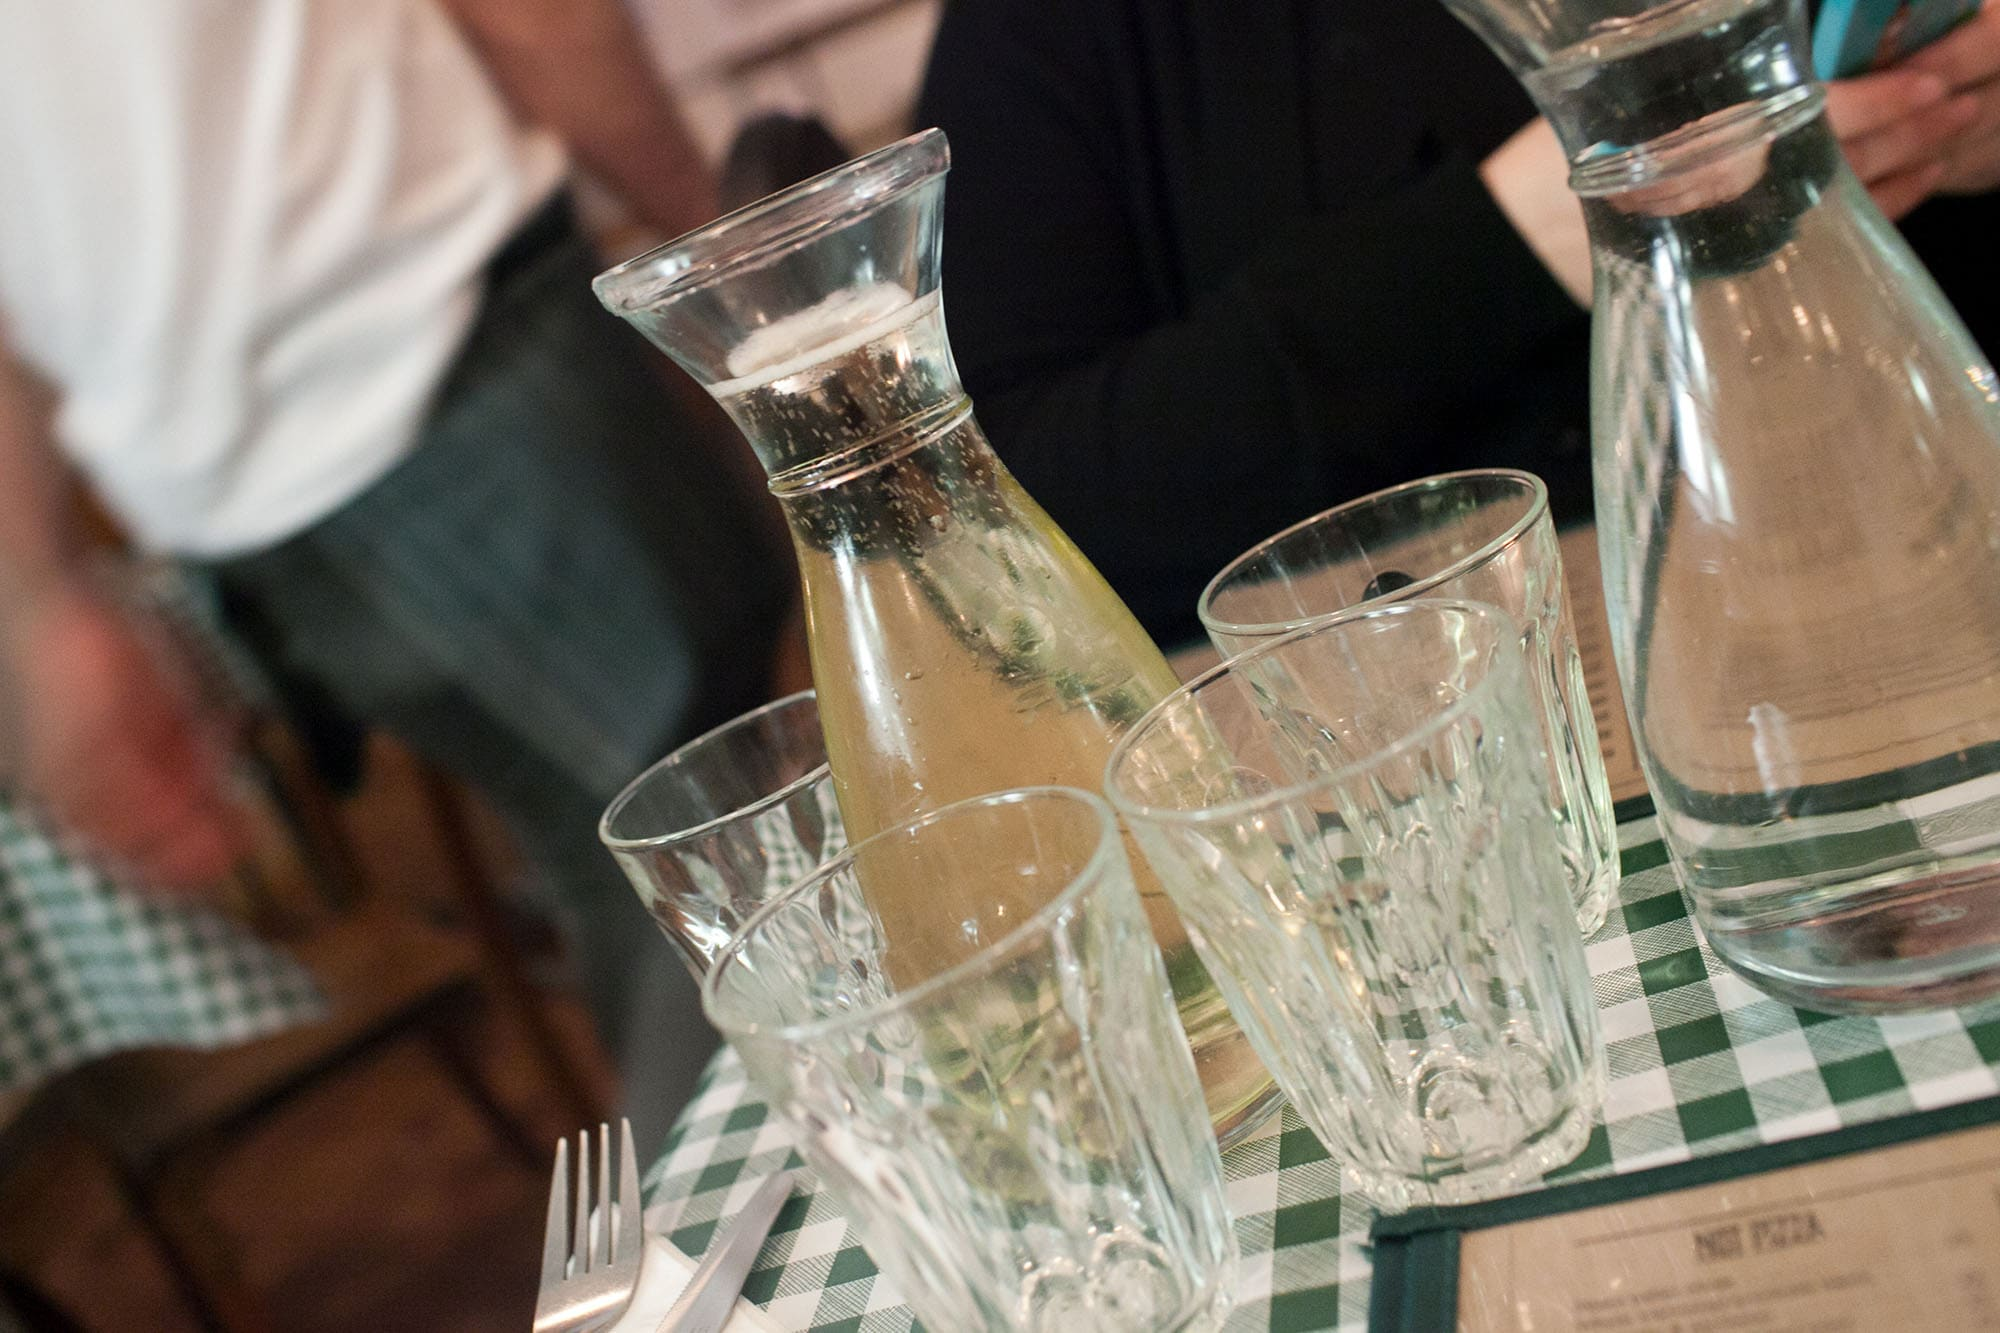 Carafe of white wine at Pizza Pilgrims in Soho, London, England